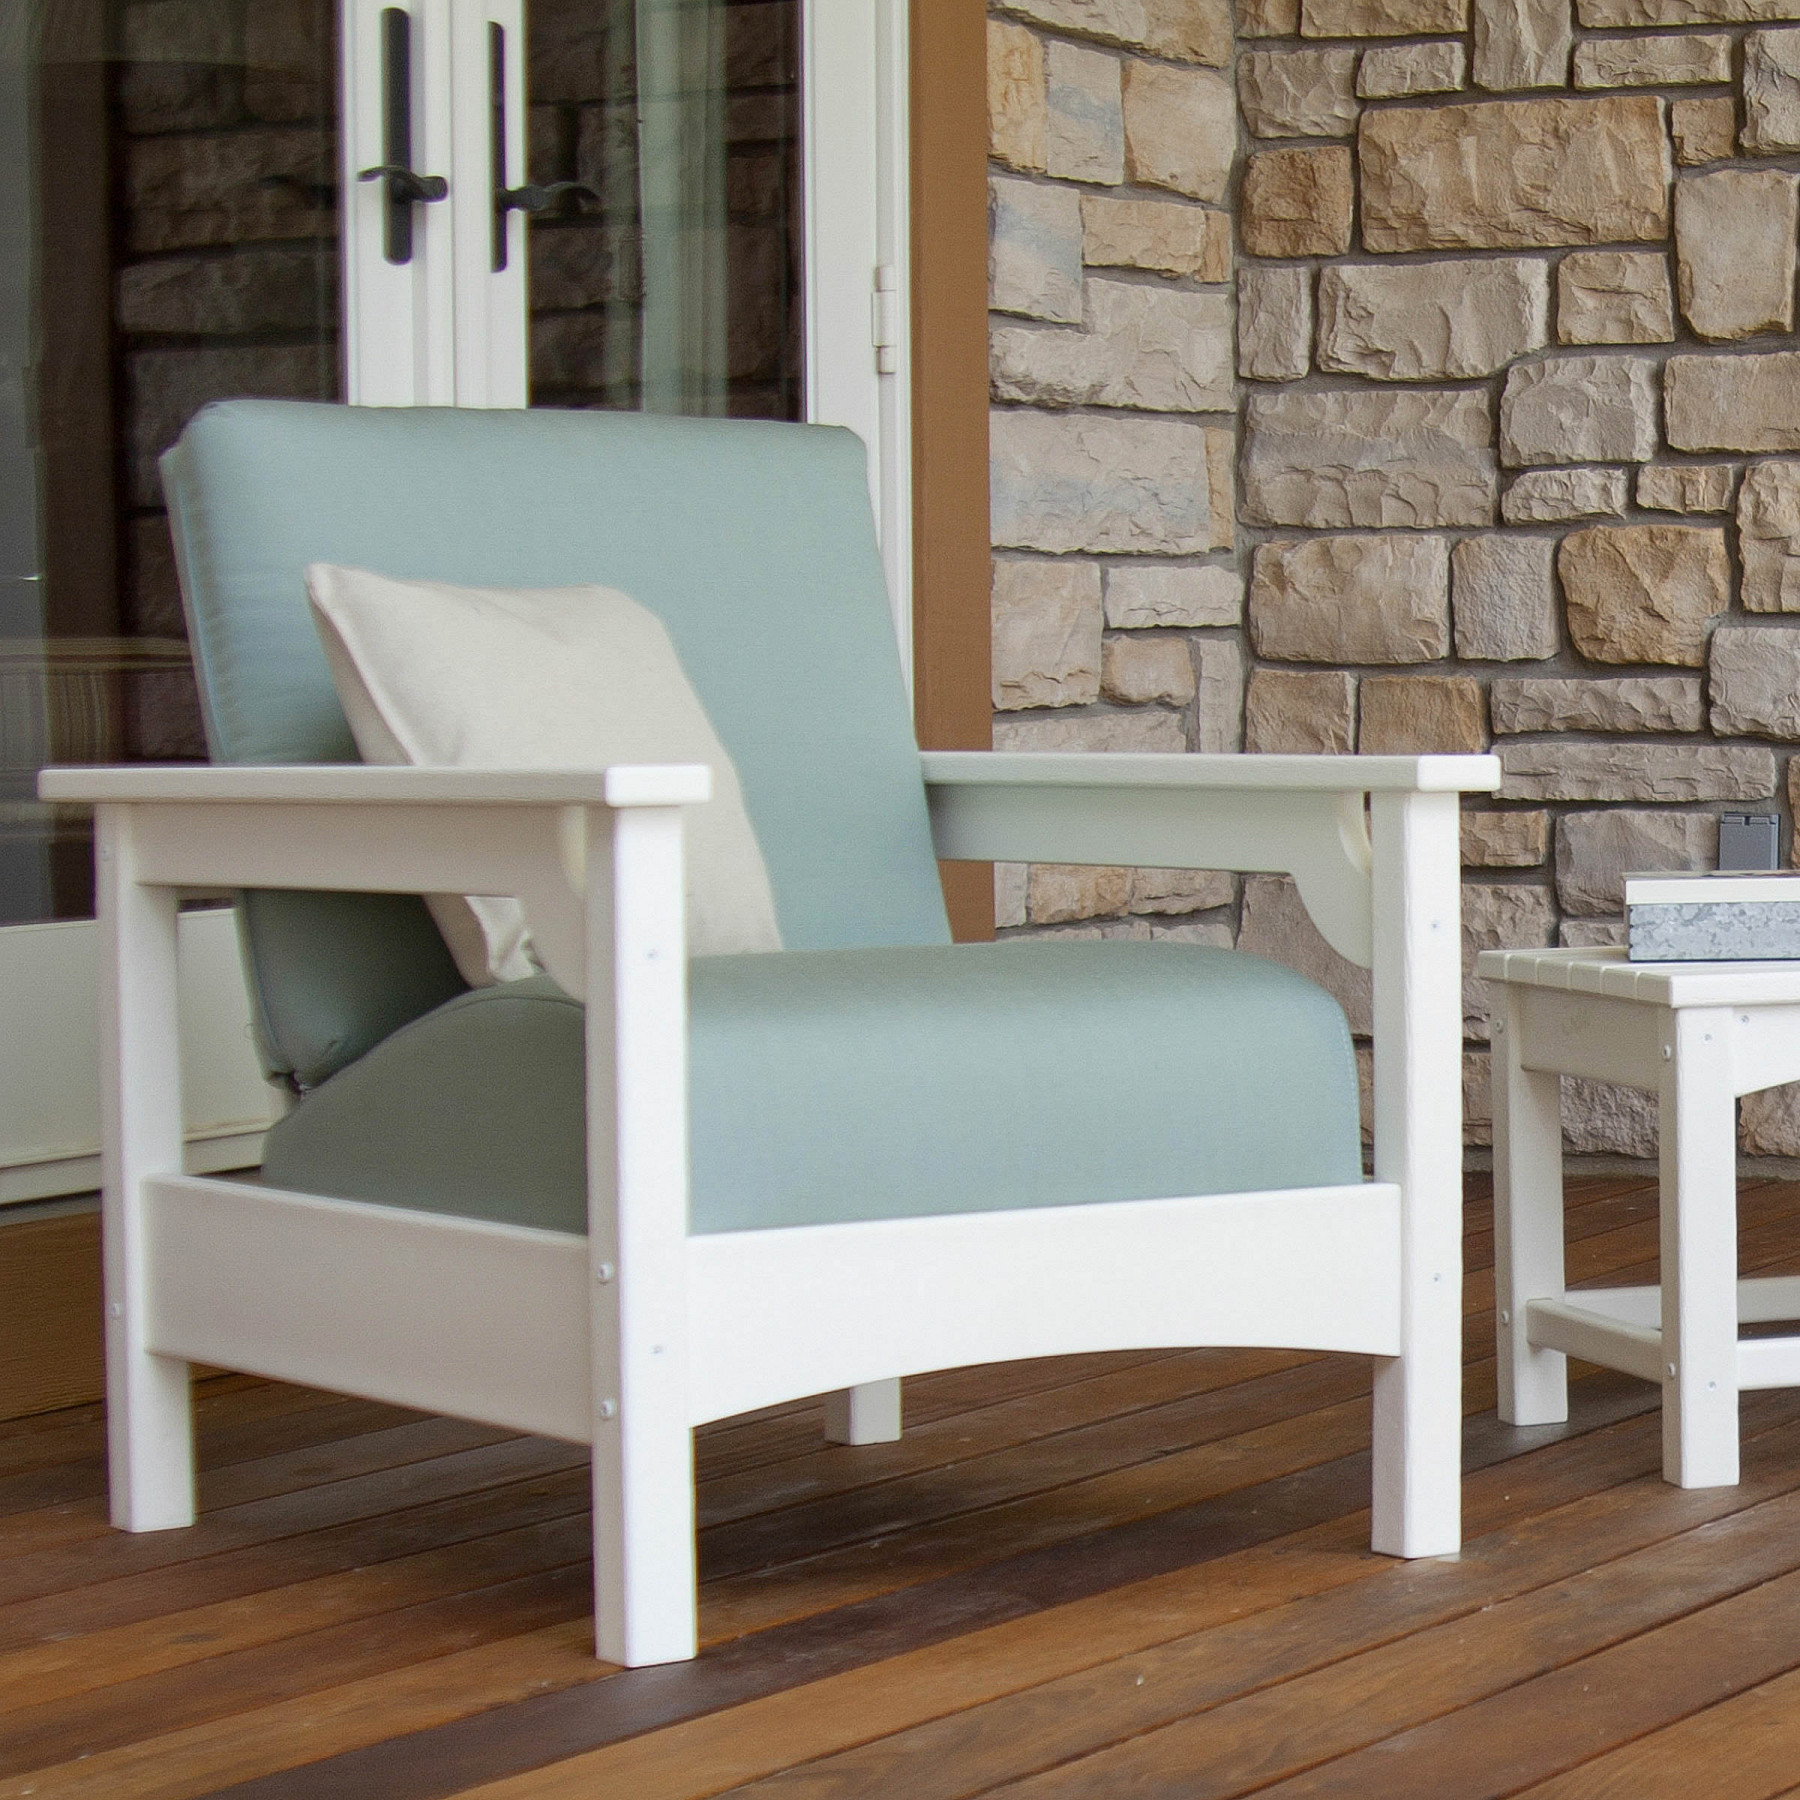 POLYWOOD Club Chair Club Collection POLYWOOD Outdoor